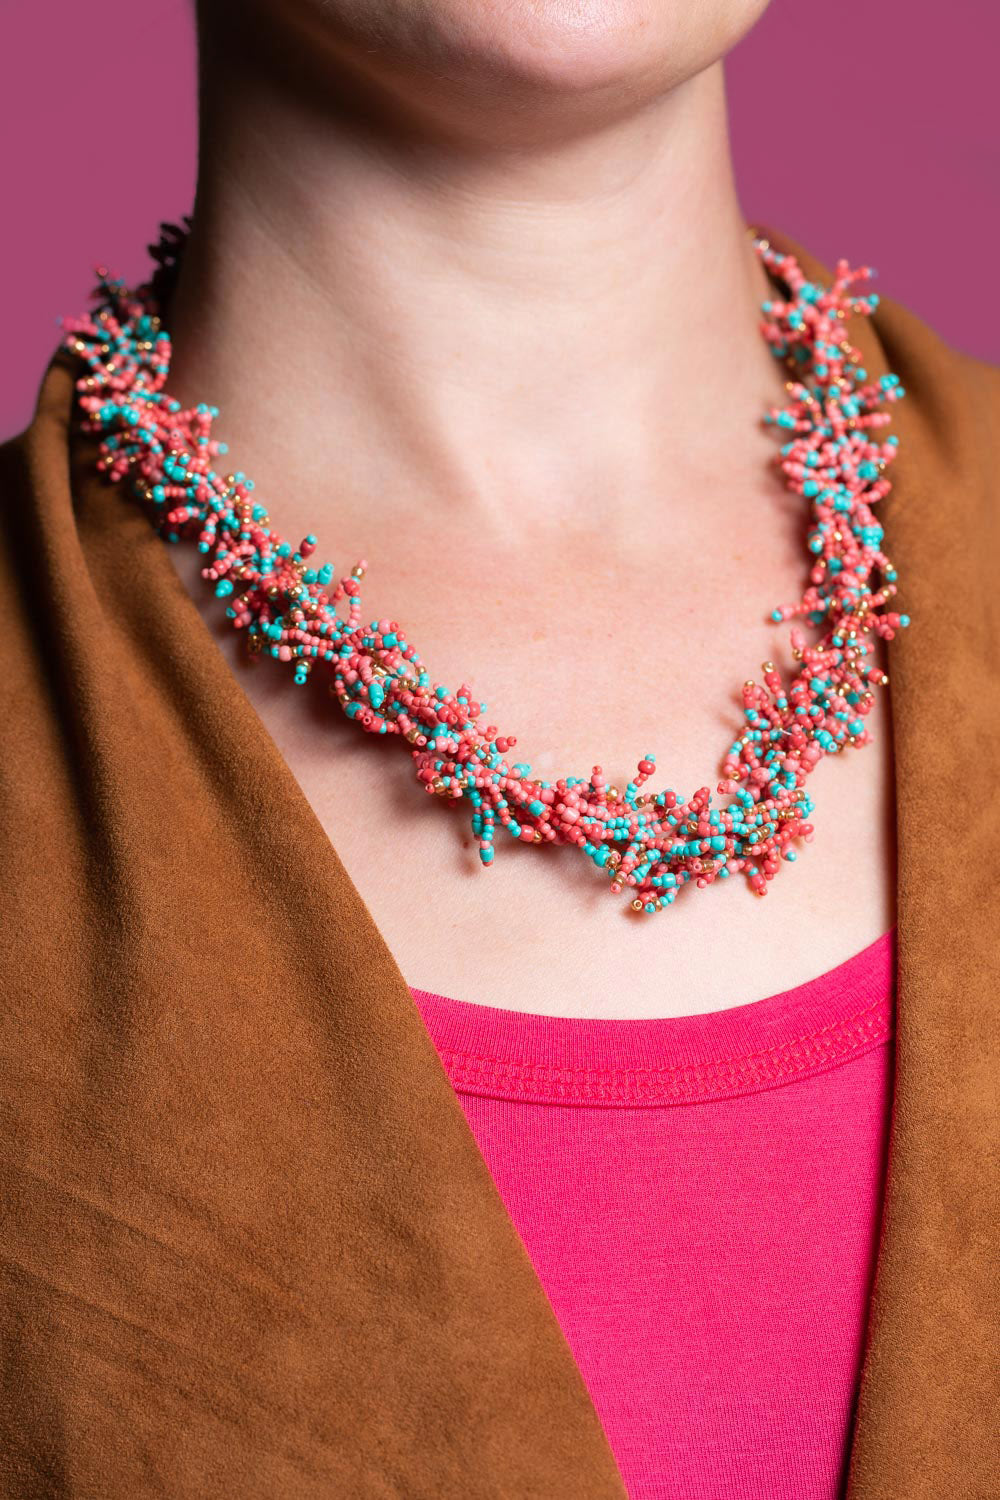 Type 3 Coral Sea Necklace/Earring Set